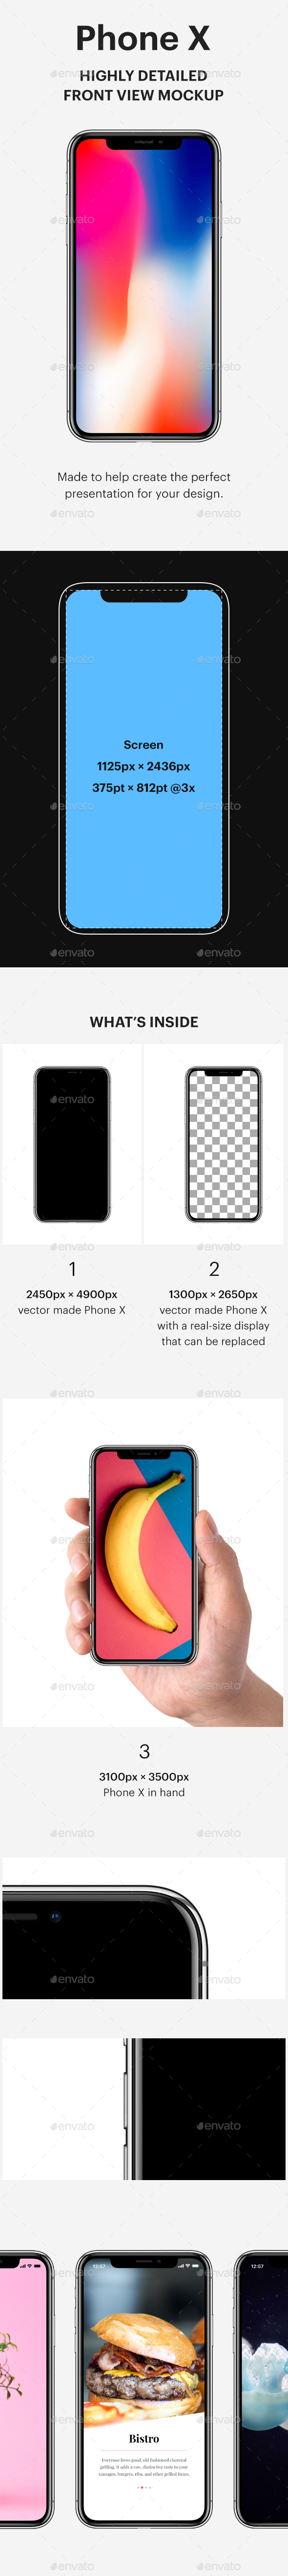 Phone X Front View Mockup - Mobile Displays